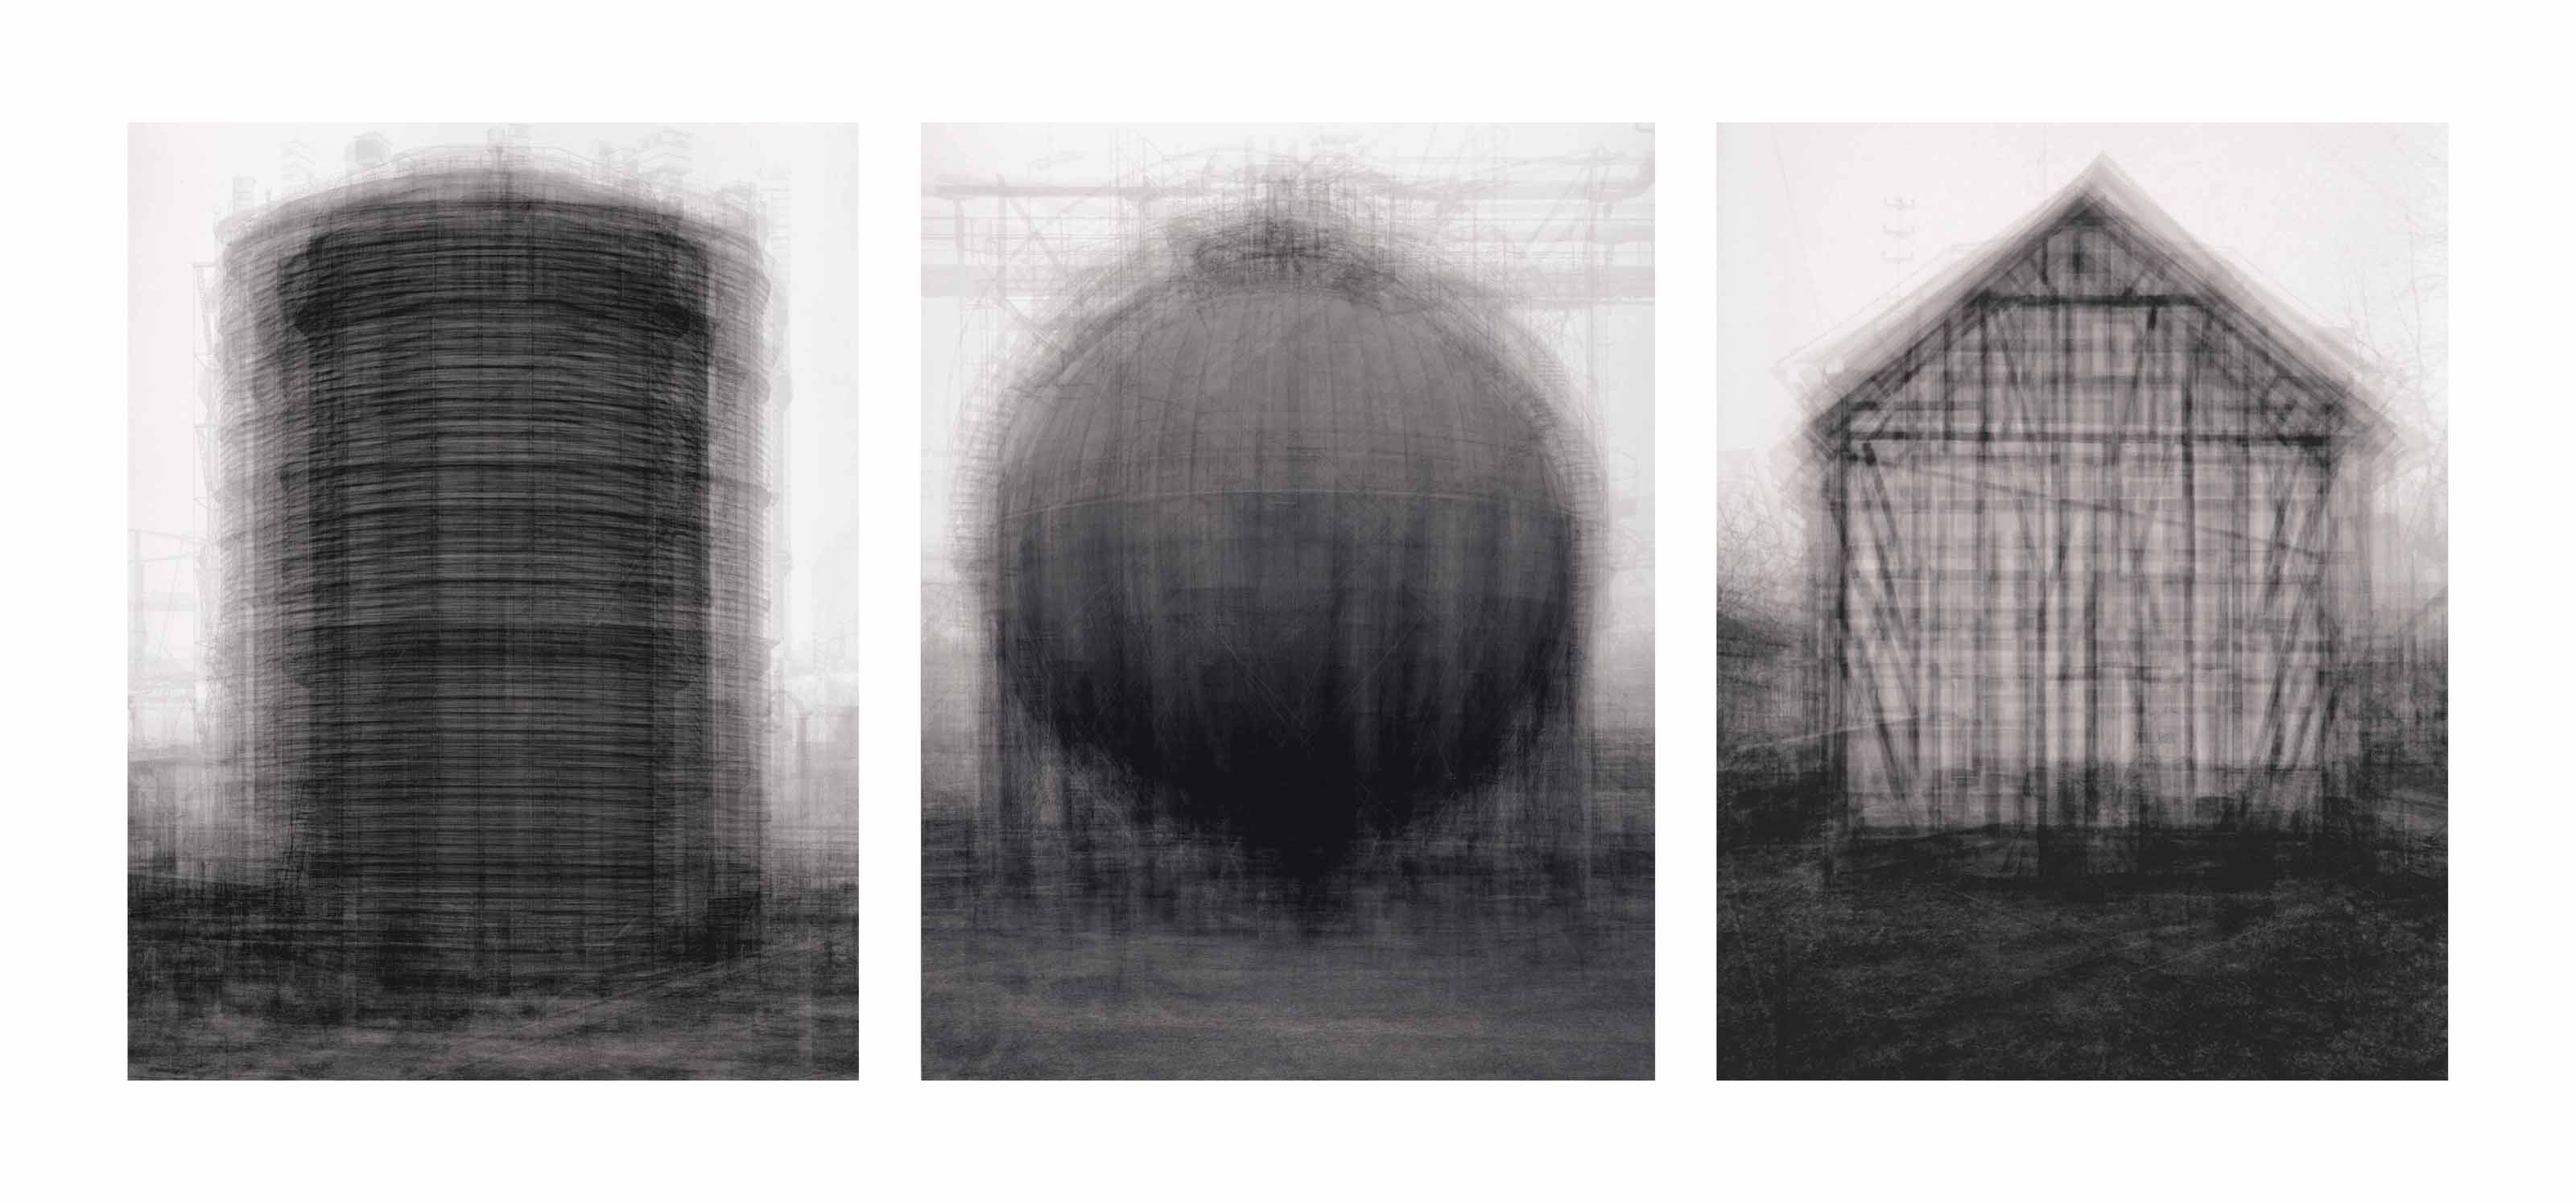 (i) Every... Bernd and Hilla Becher Prison Type Gasholders (ii) Every... Bernd and Hilla Becher Spherical Type Gasholders (iii) Every... Bernd and Hilla Becher Gable Side Houses